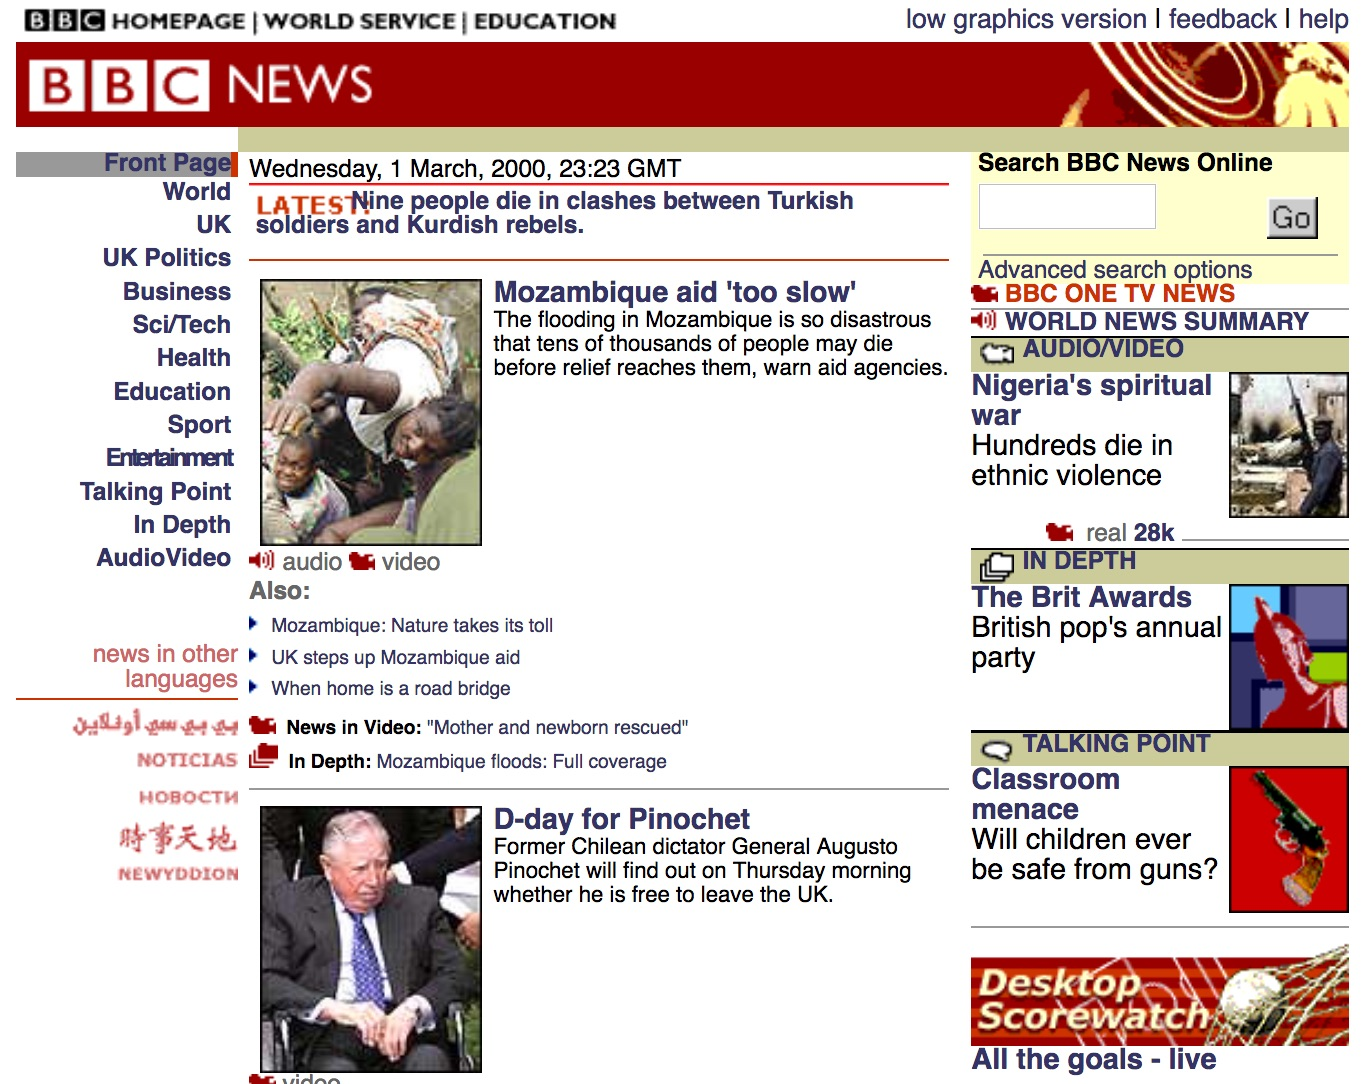 25 Years of BBC Website Website Design History - 31 Images - Version